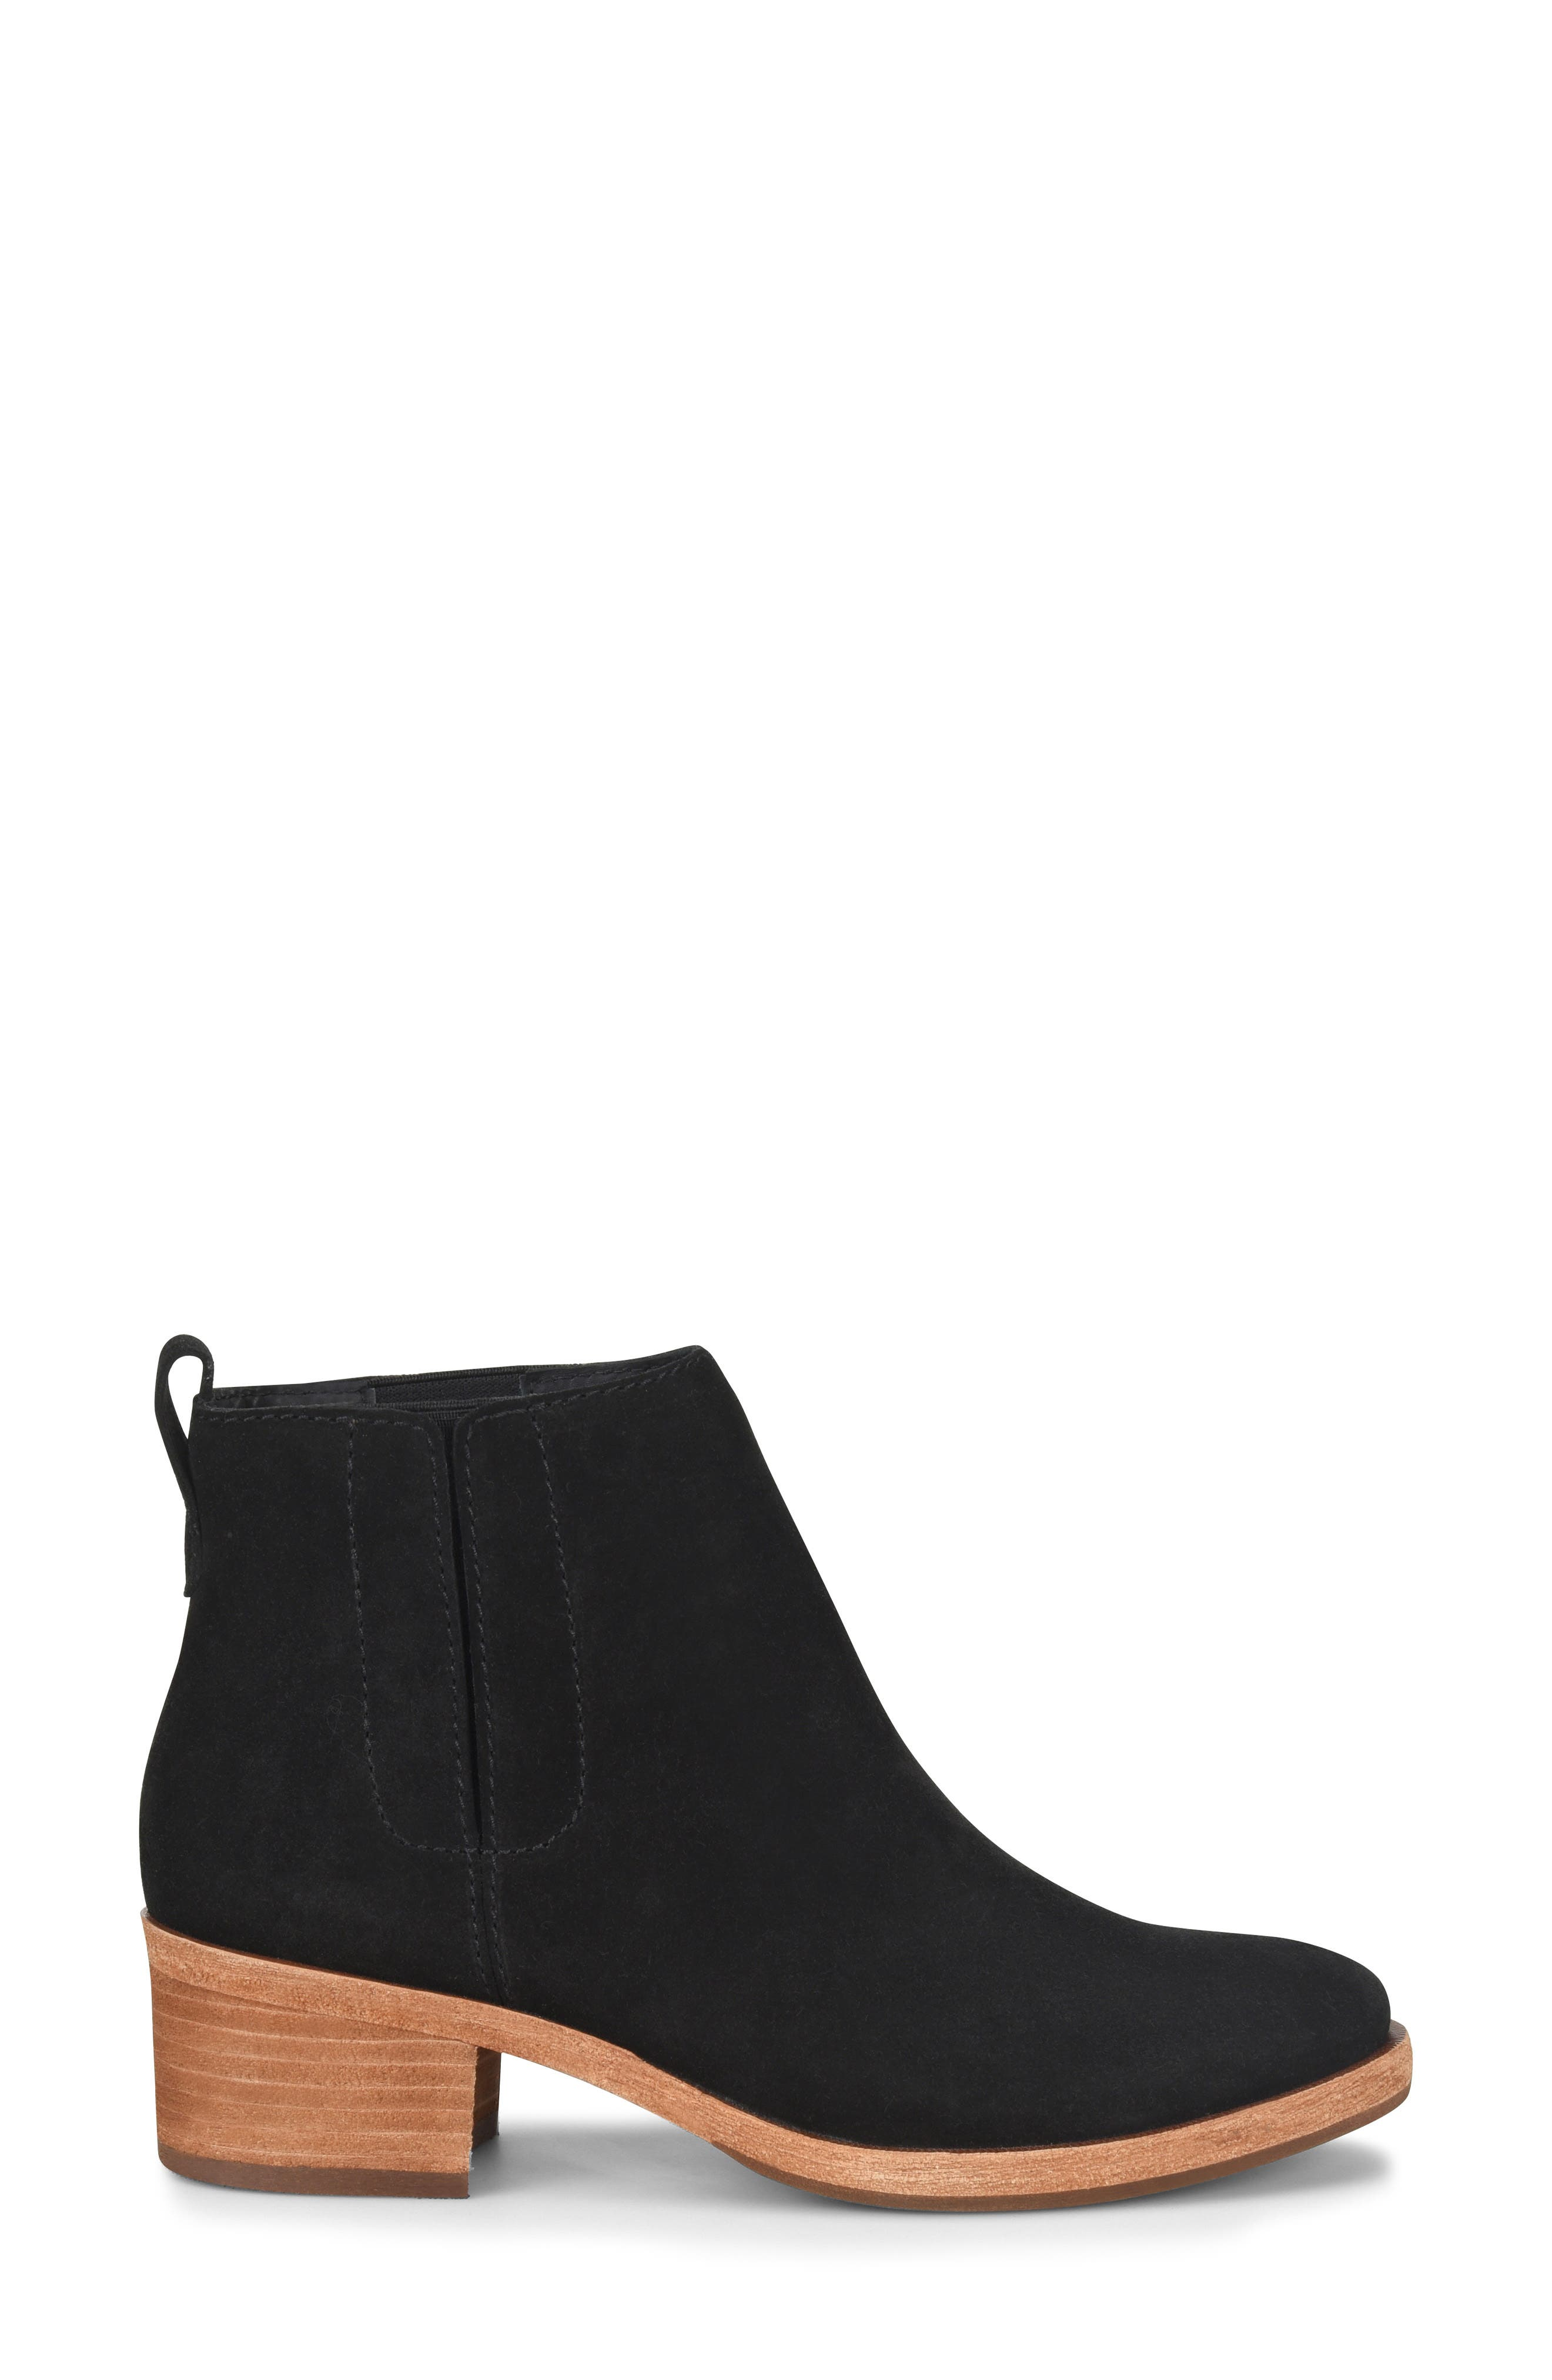 KORK-EASE<SUP>®</SUP>, Mindo Chelsea Bootie, Alternate thumbnail 3, color, BLACK SUEDE